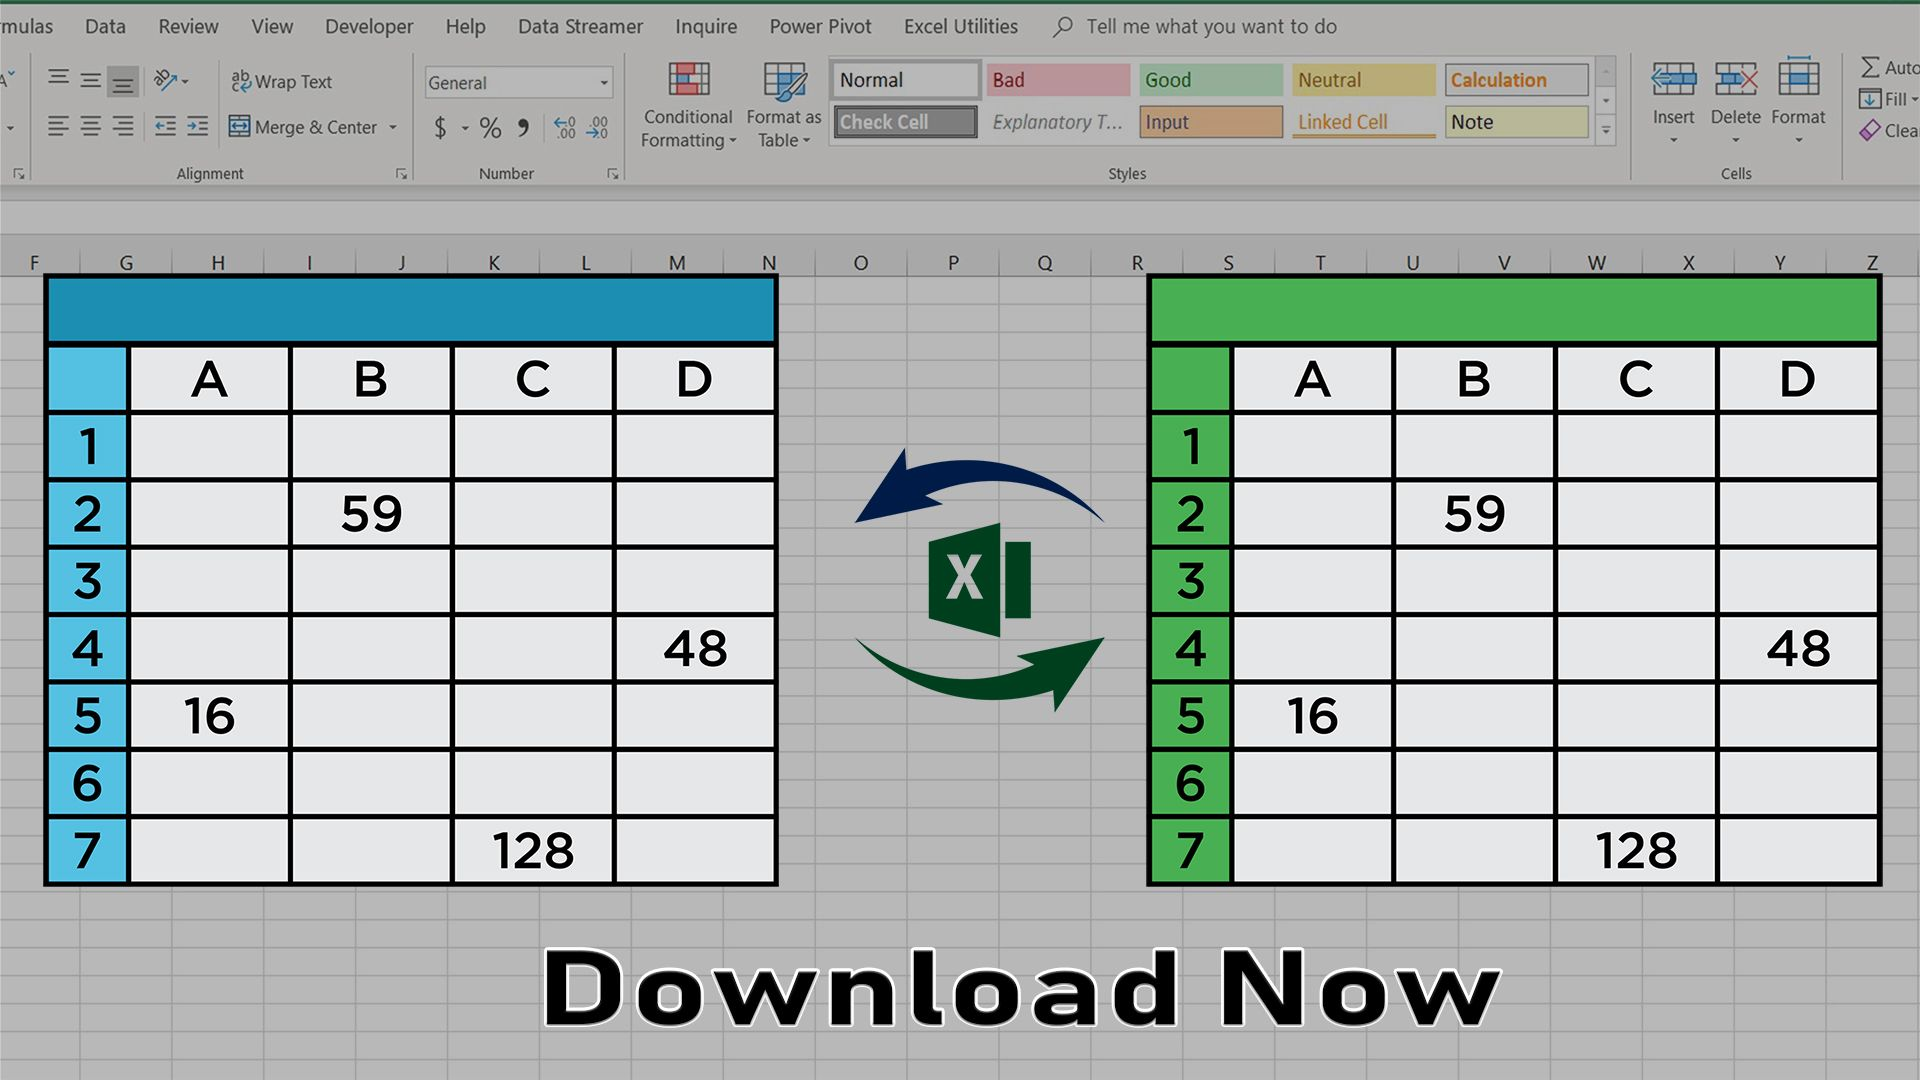 Compare two excel sheets and find matches and differences